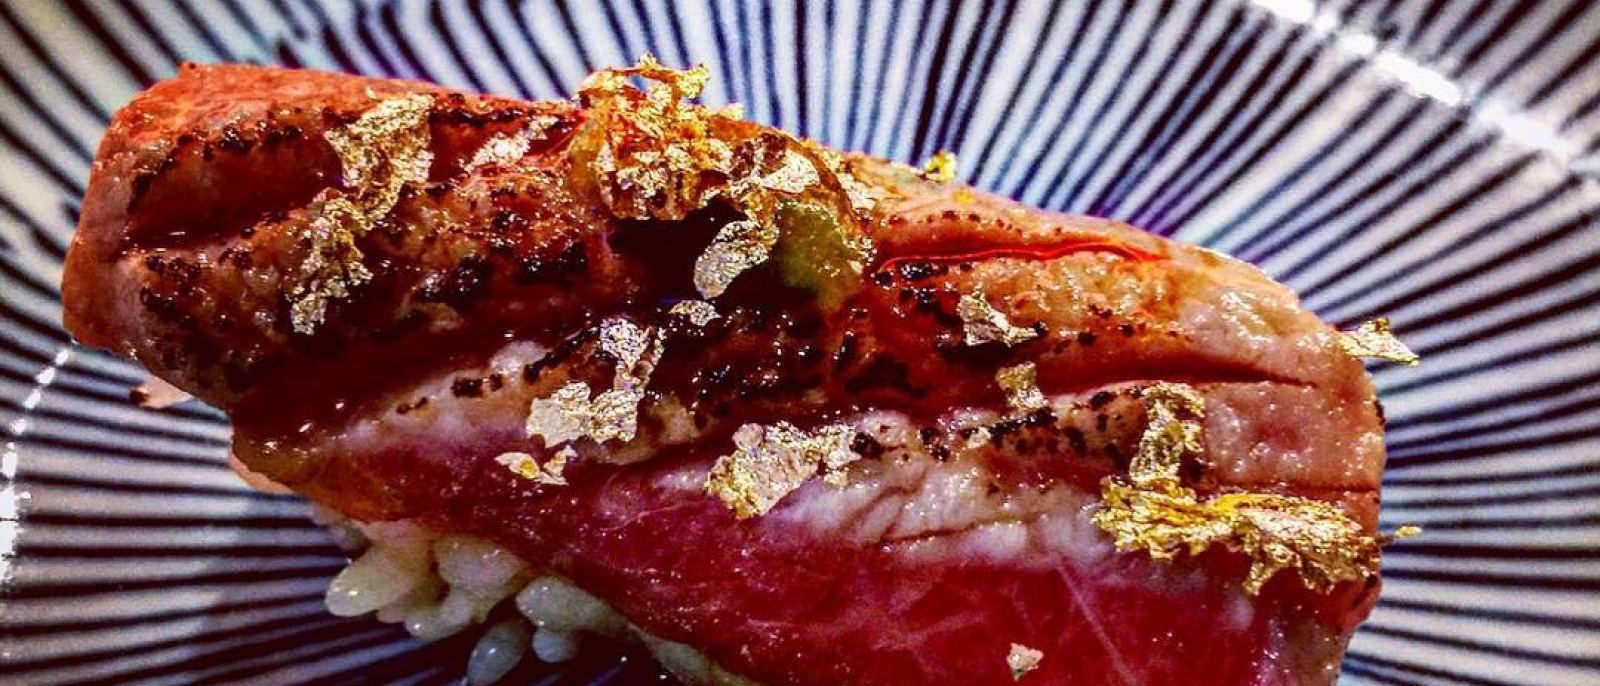 Seared bluefin toro with gold flakes at Okumura Restaurant in Encino